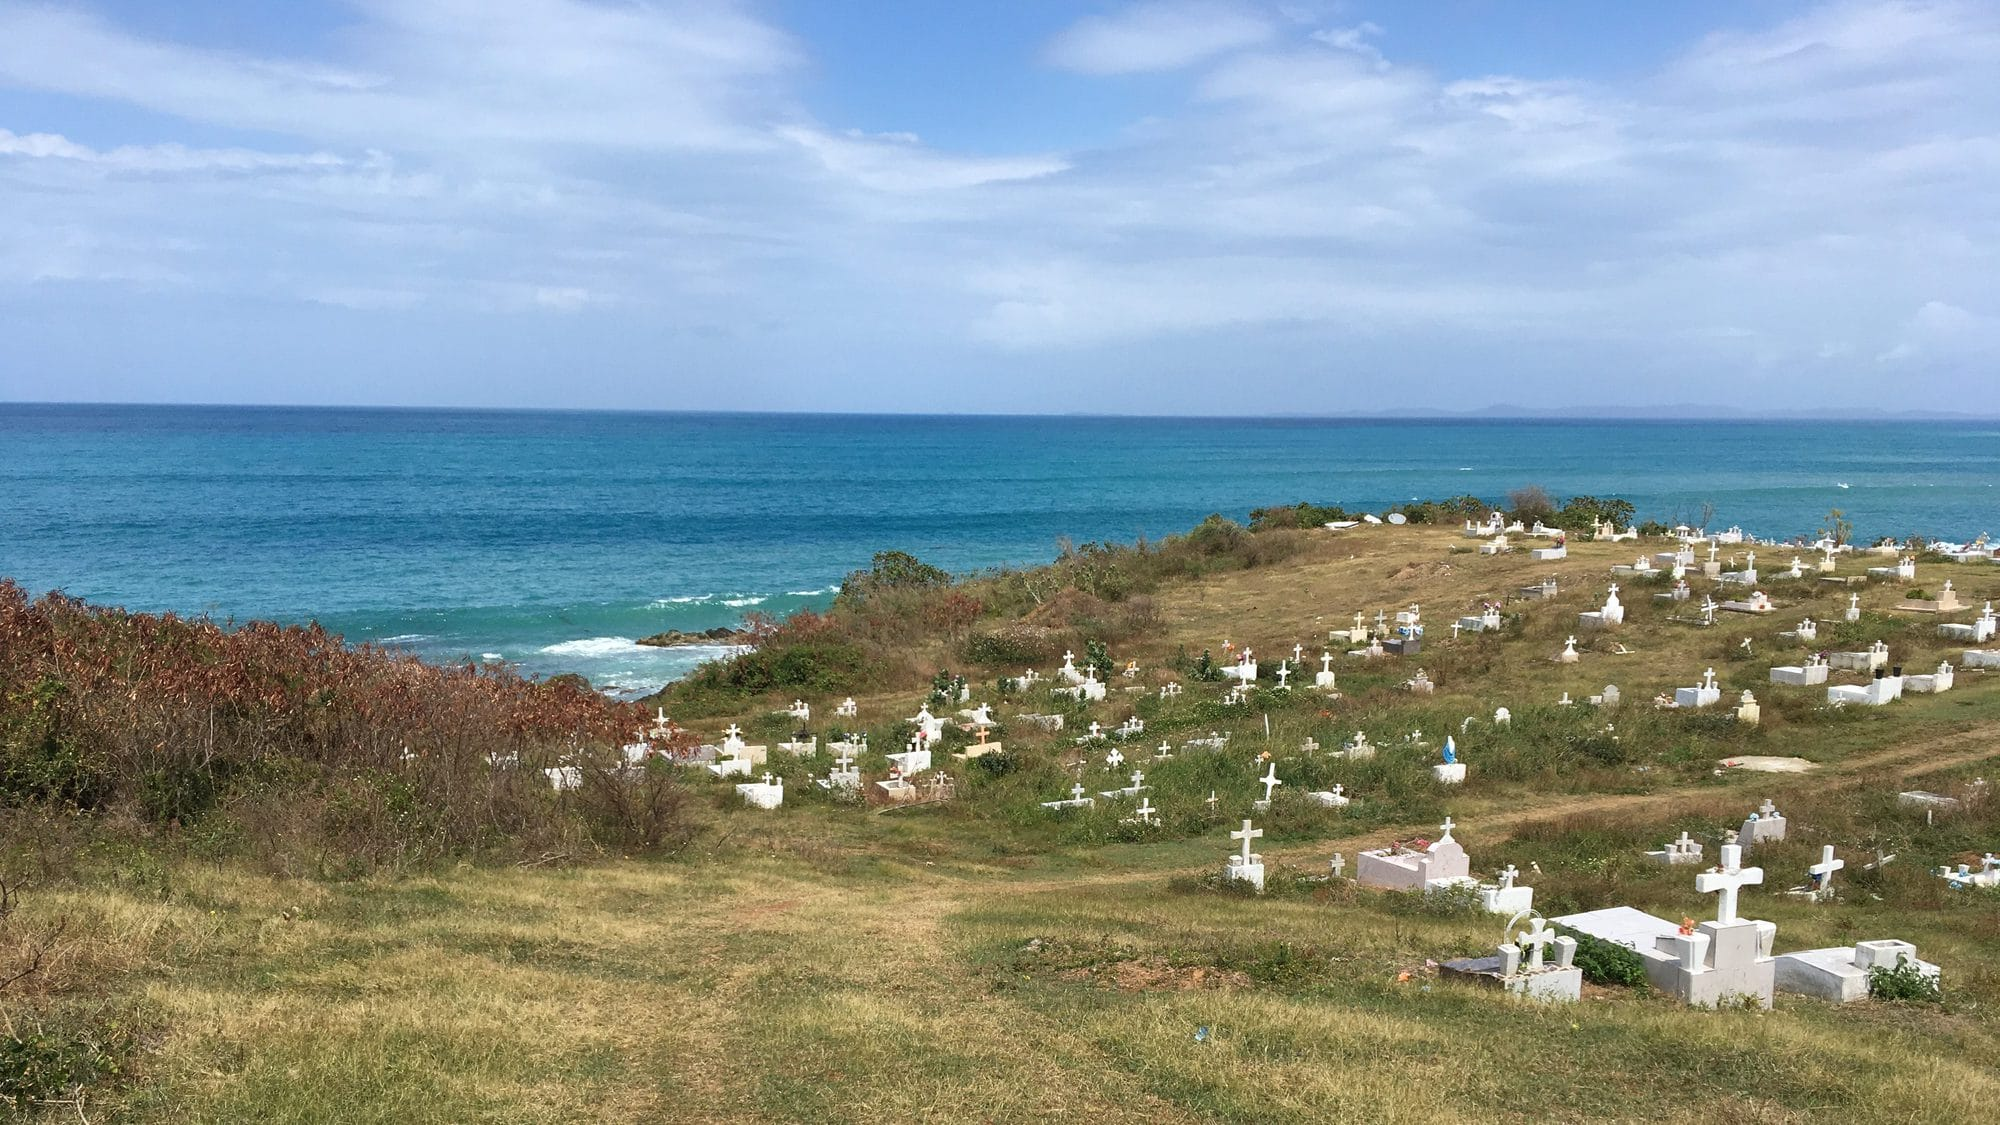 View of the ocean from across the hills of the cemetery